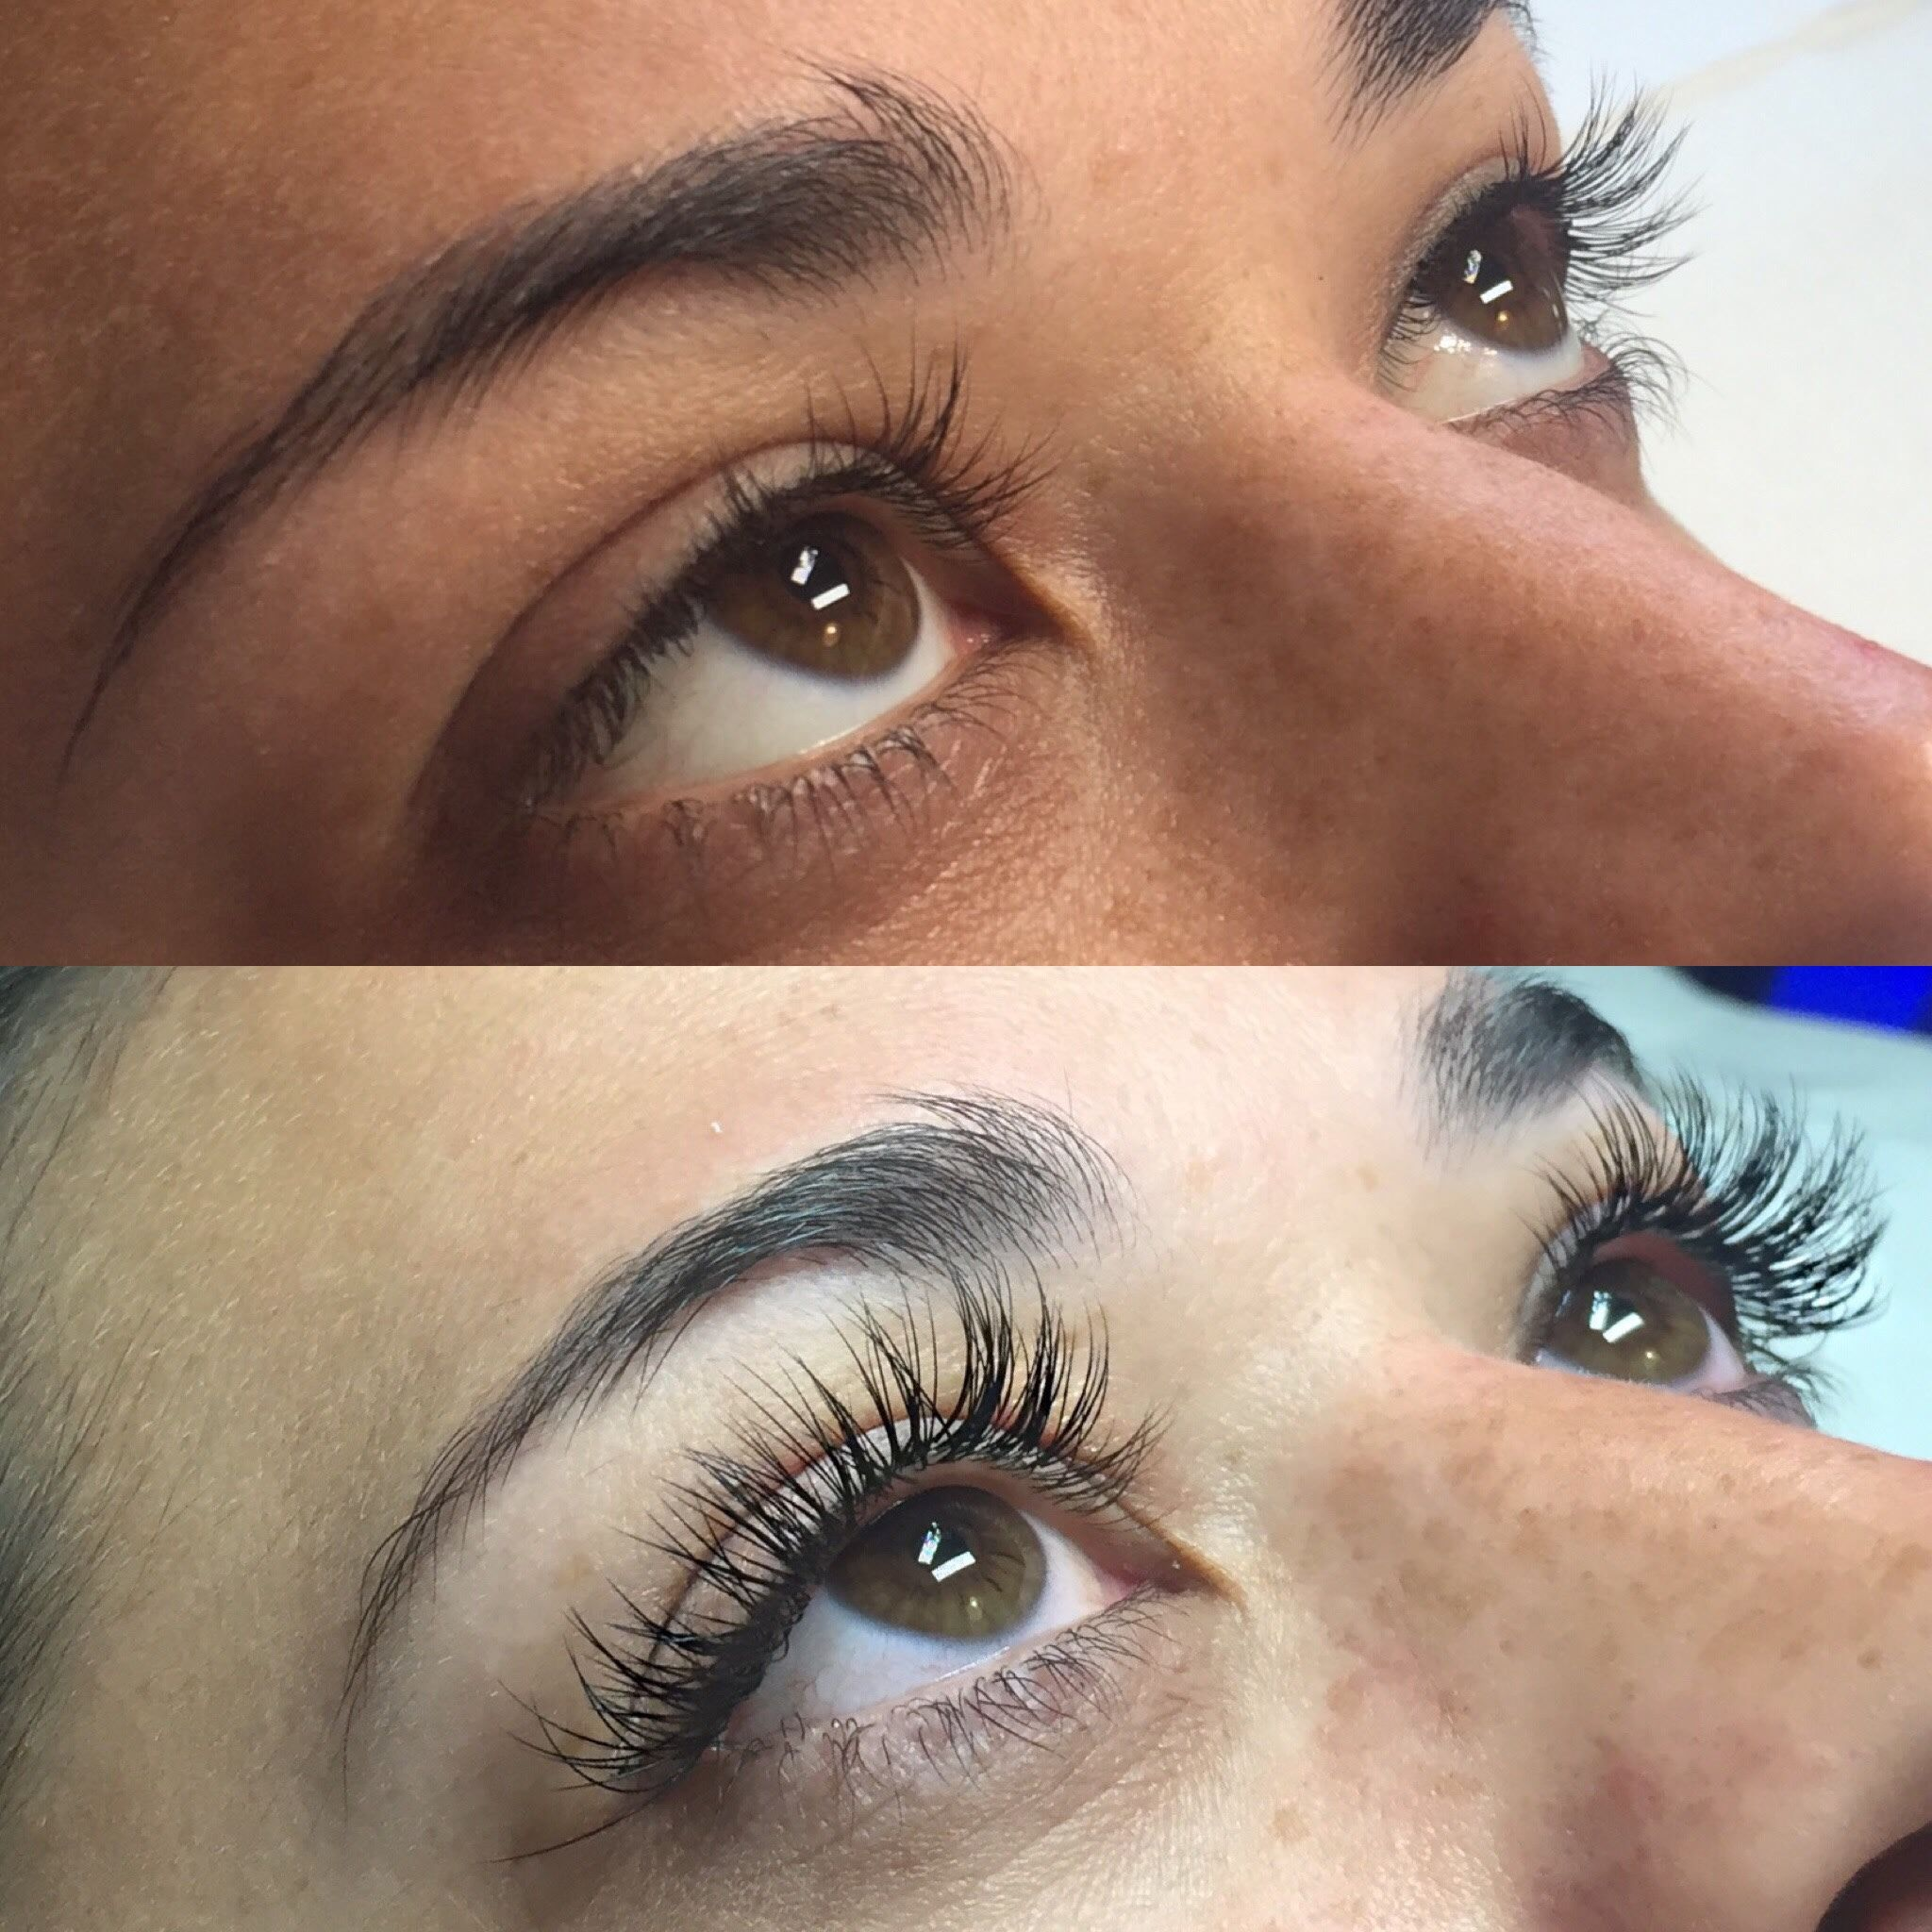 Average cost of lash extensions in Maryland? Lash